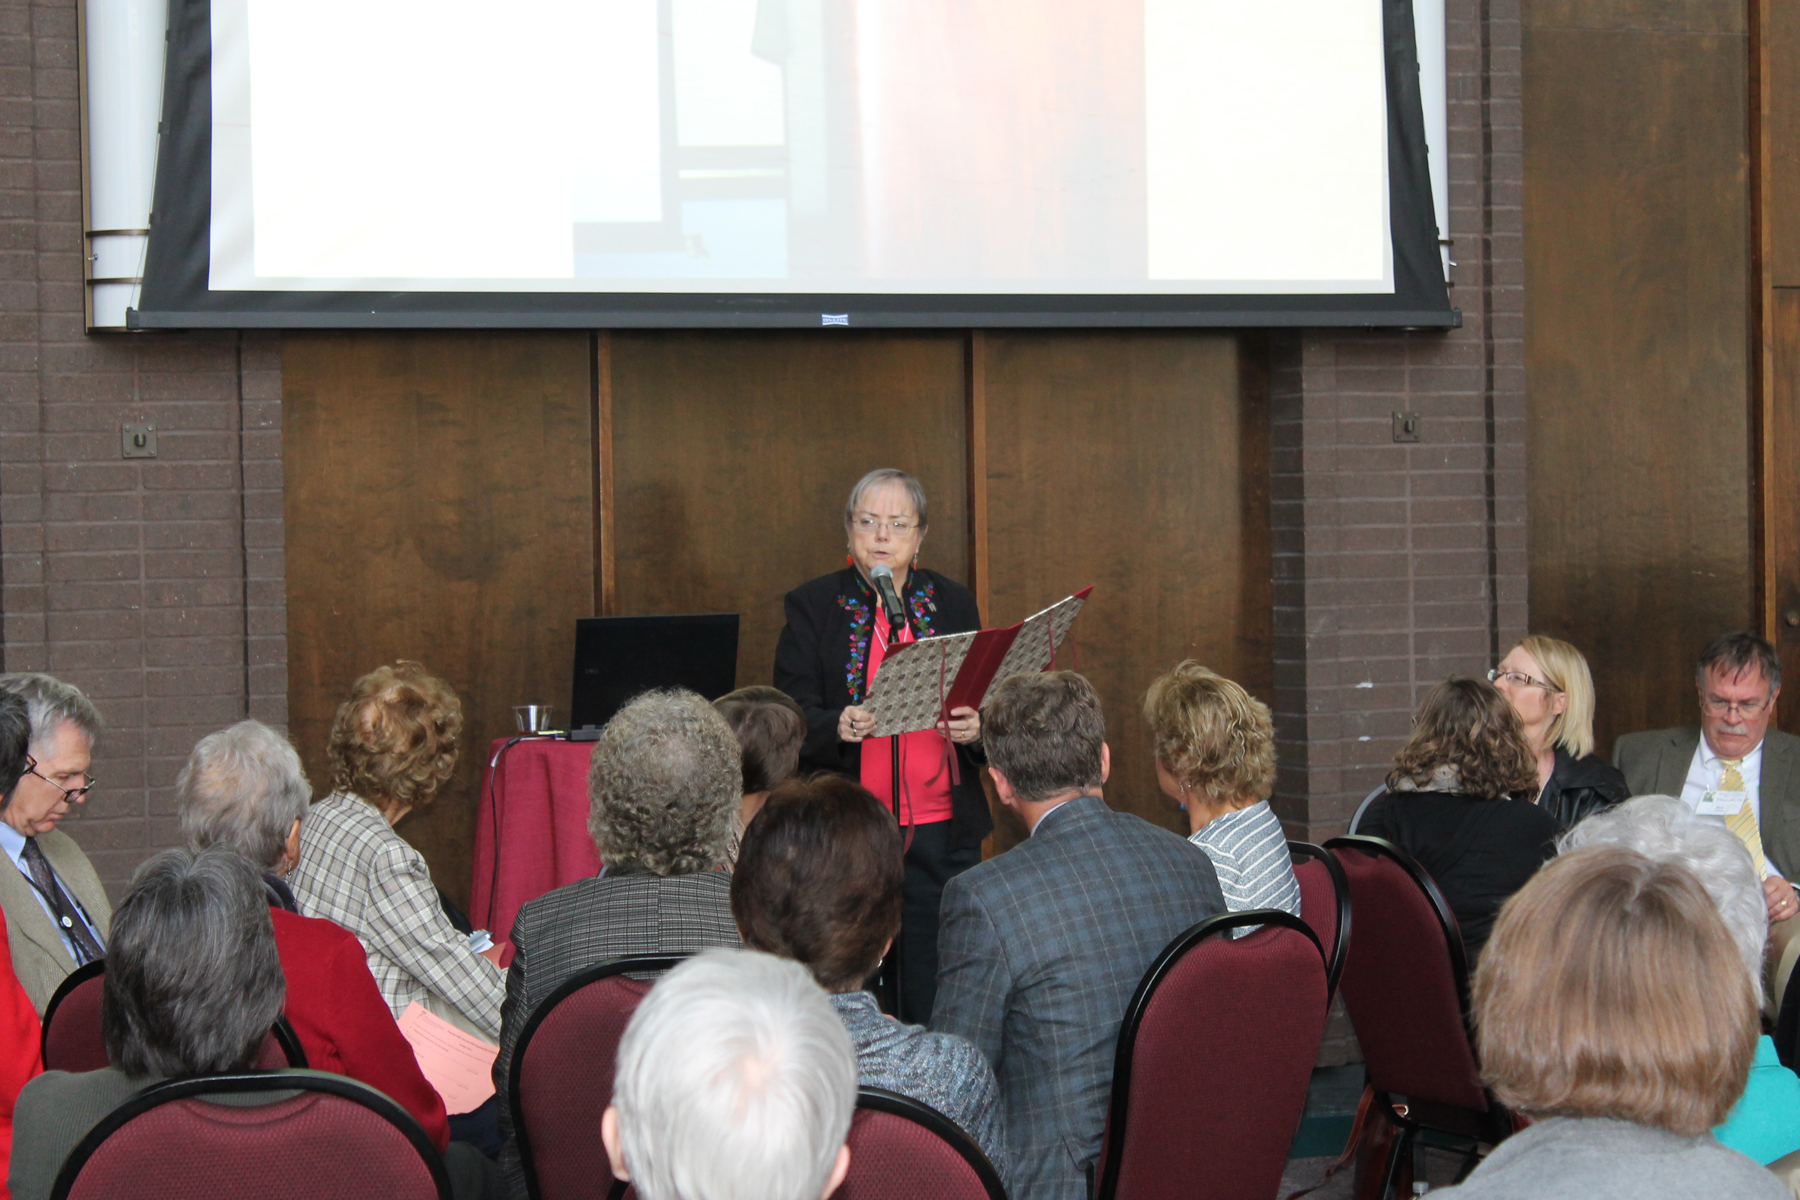 Sister Jean addresses group